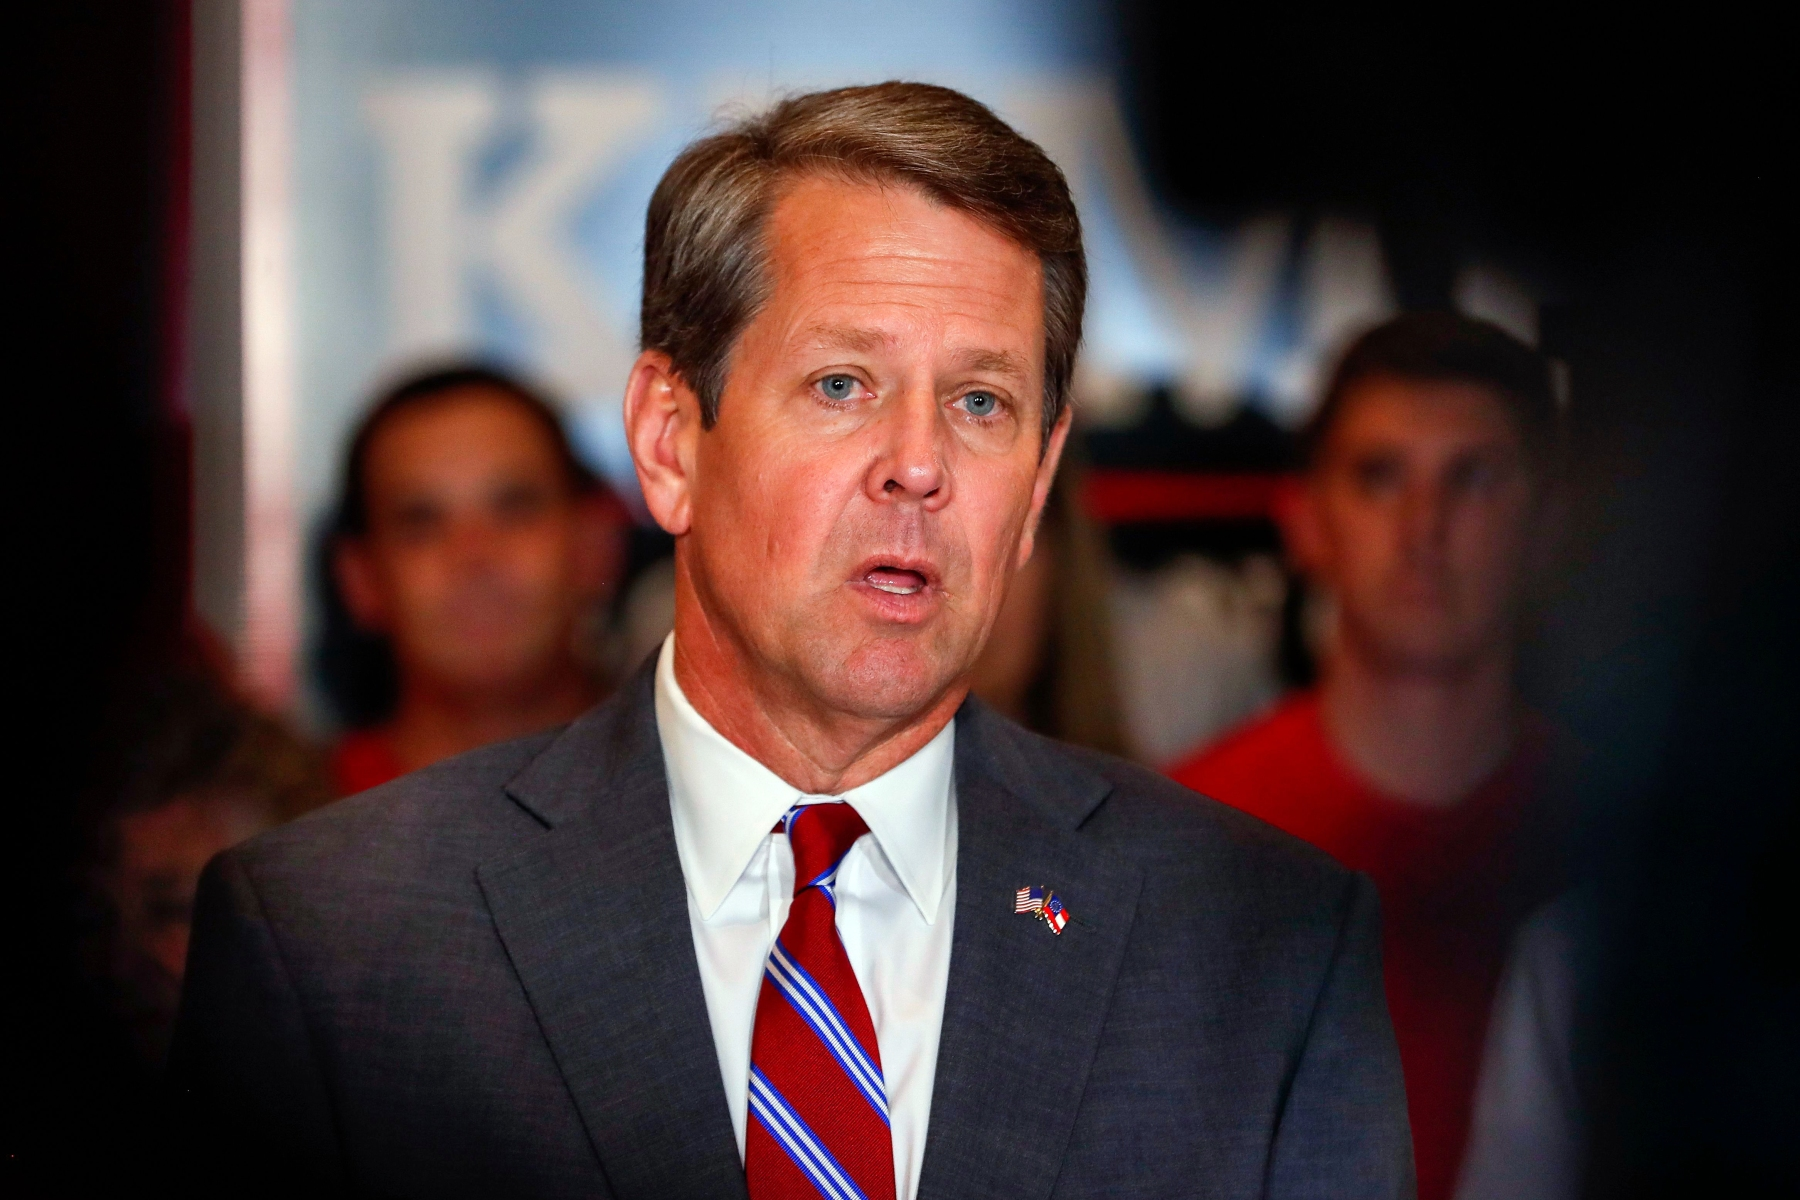 Brian KempGeorgia Republican gubernatorial runoff candidate Brian Kemp, Atlanta, USA - 17 Jul 2018Georgia Republican gubernatorial runoff candidate Brian Kemp speaks at a campaign event in Atlanta, Georgia, USA, 17 July 2018. Kemp, the Georgia Secretary of State, faces Georgia Lieutenant Governor Casey Cagle in a 24 July primary runoff election.